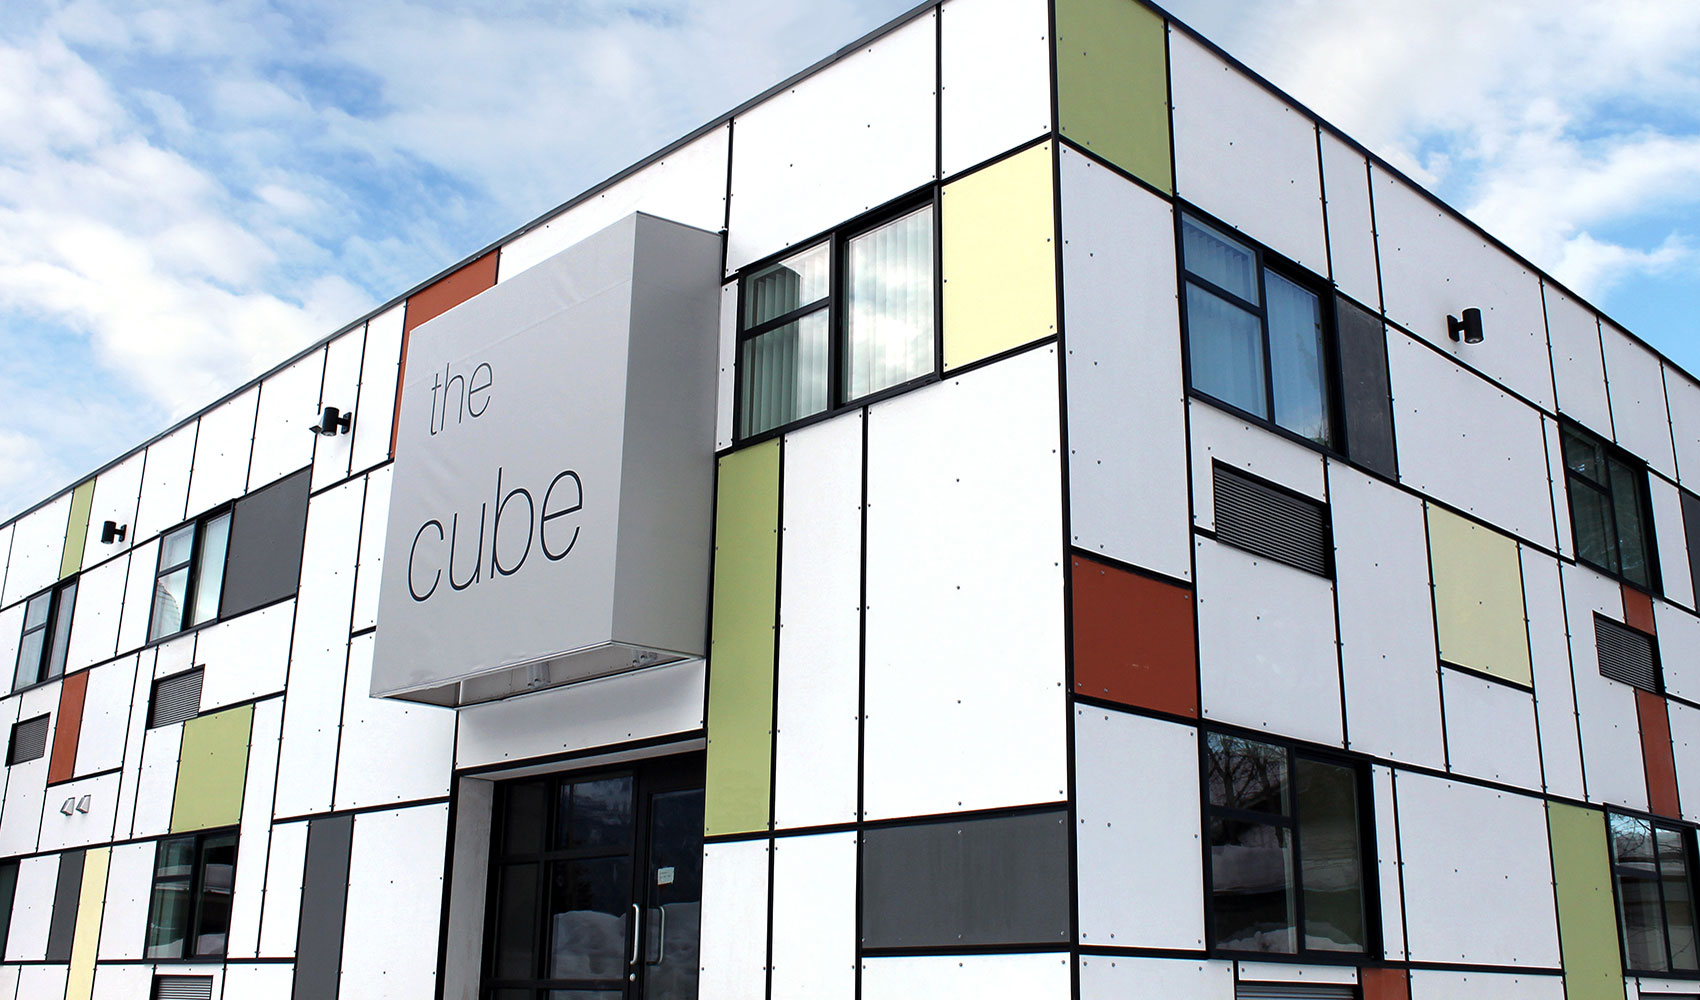 Revelstoke Hotel - The Cube offers the privacy of a hotel and the social atmosphere of a hostel.